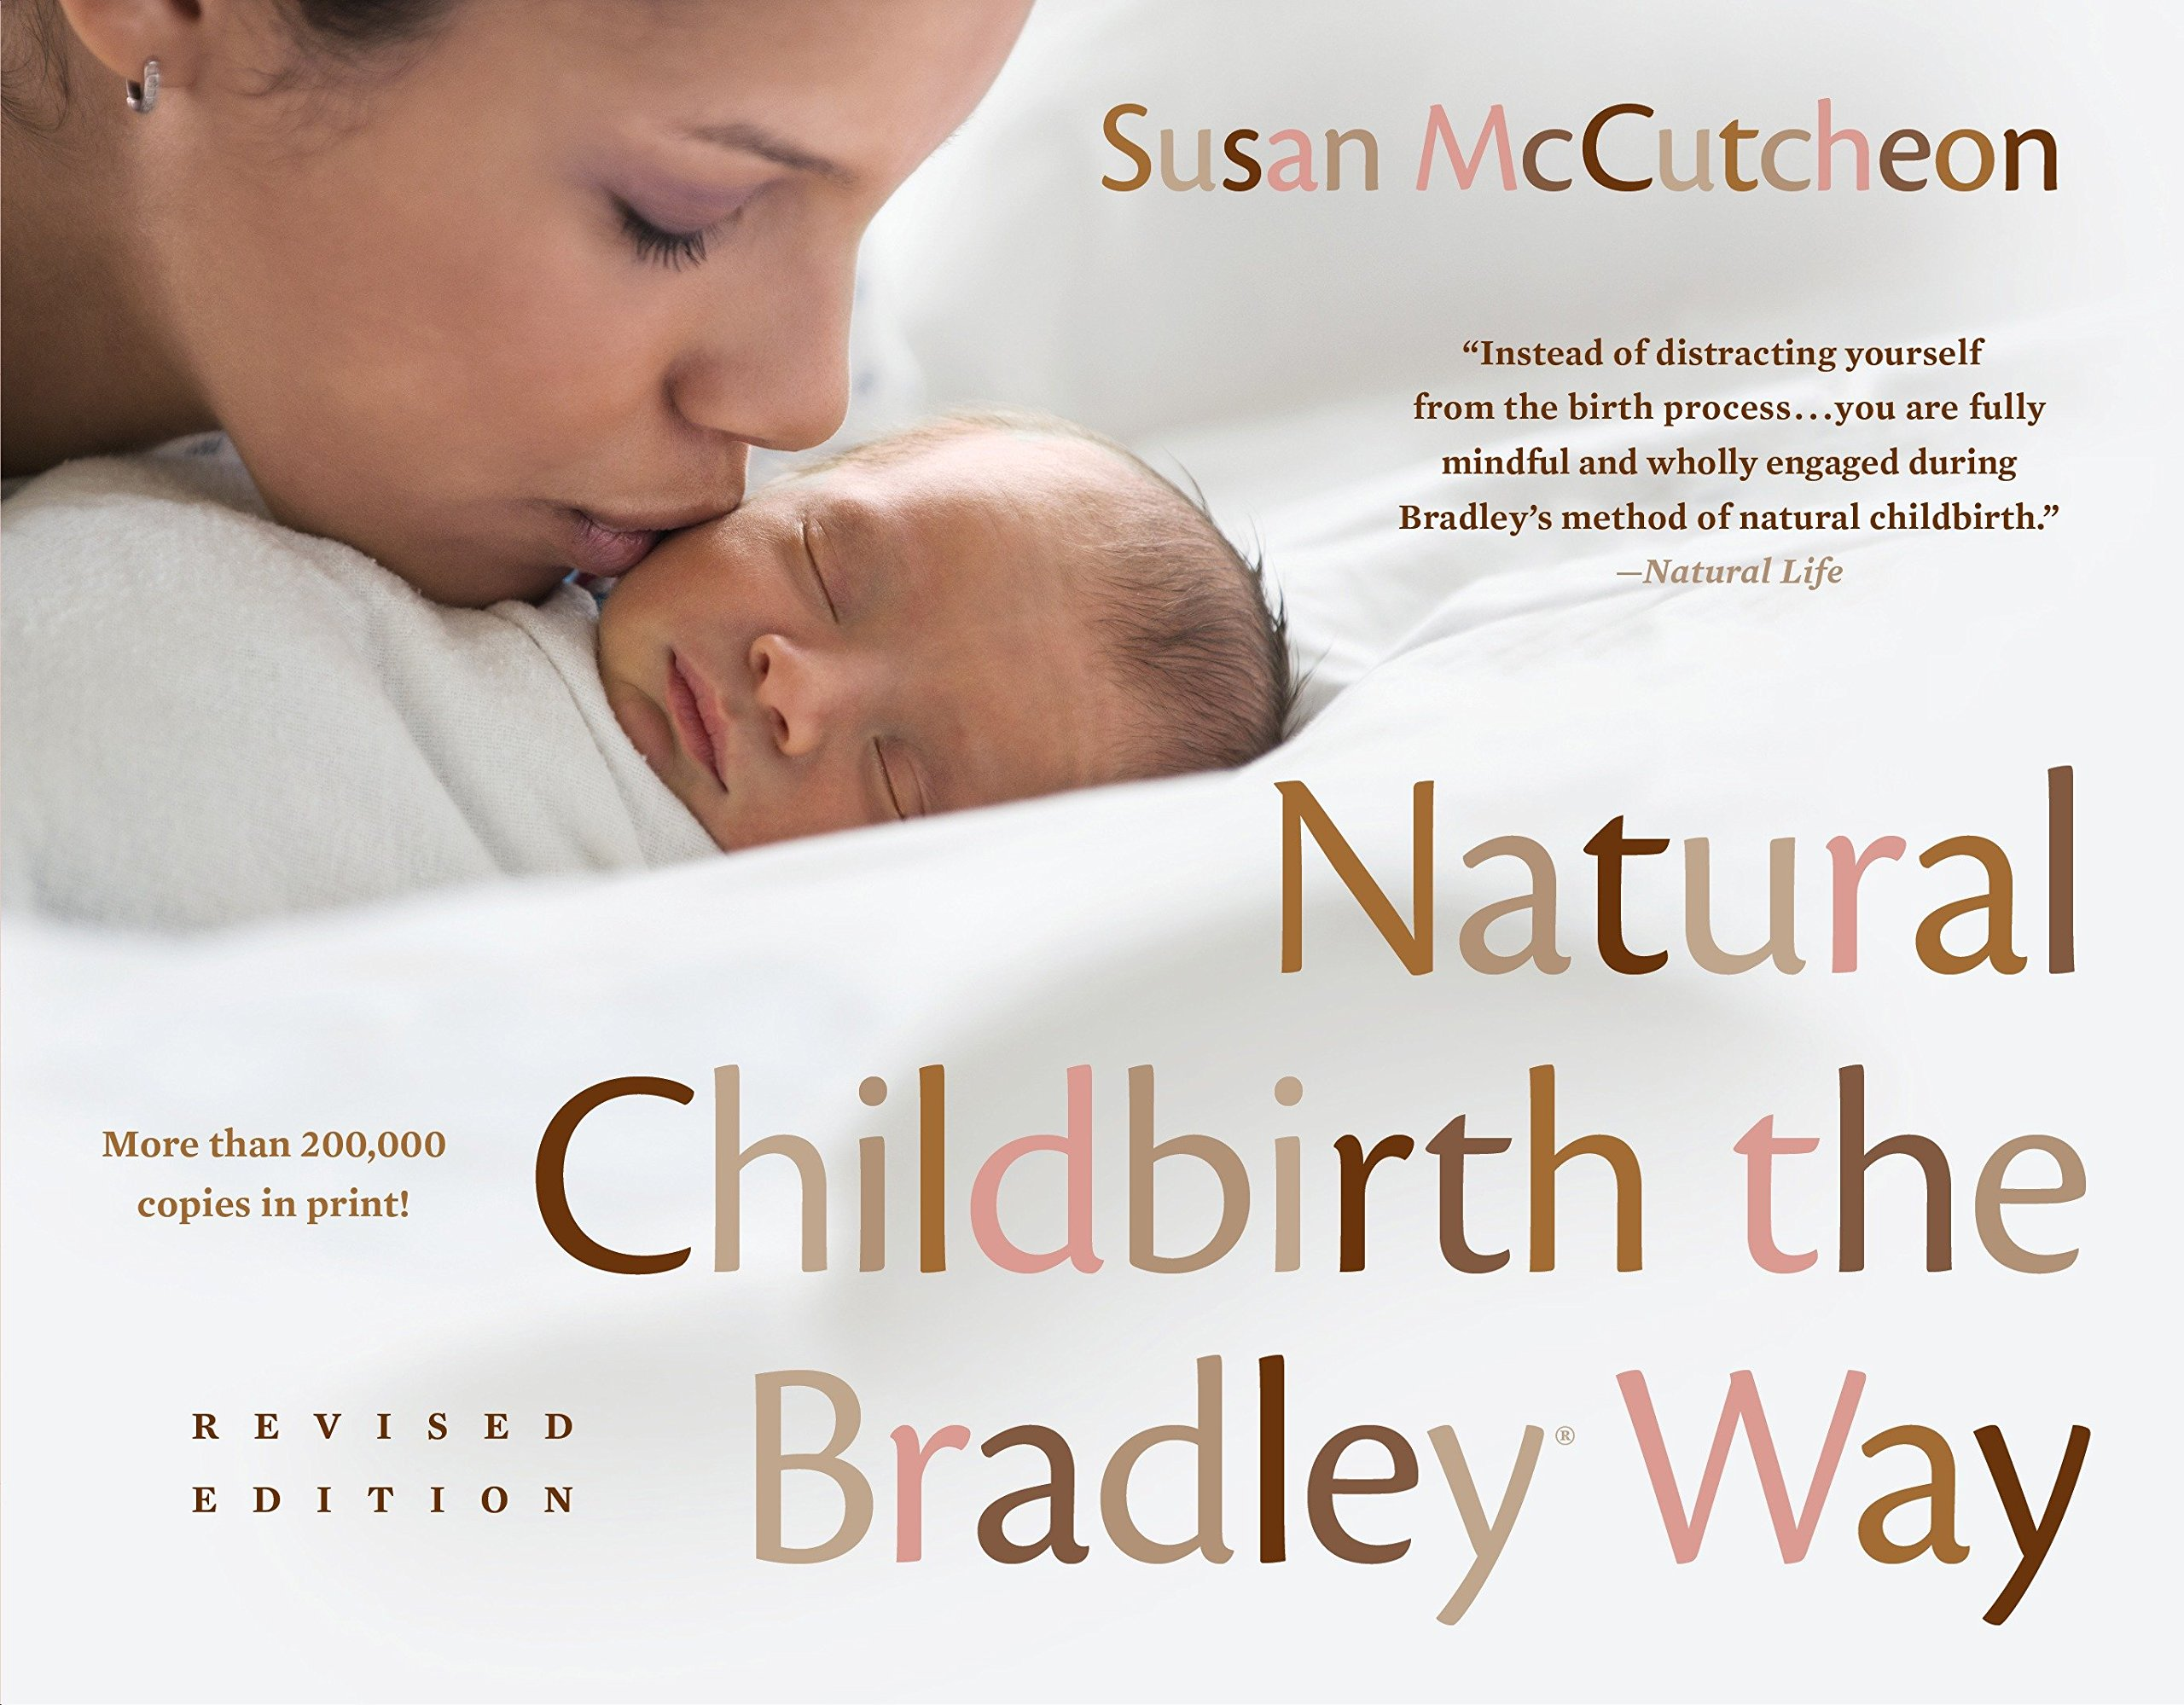 5 of The Highest Rated Natural Birth Books Ever Written - Natural Childbirth the Bradley Way  by Susan McCutcheon and Erick Ingraham  4.5 out of 5 stars 594 ratings